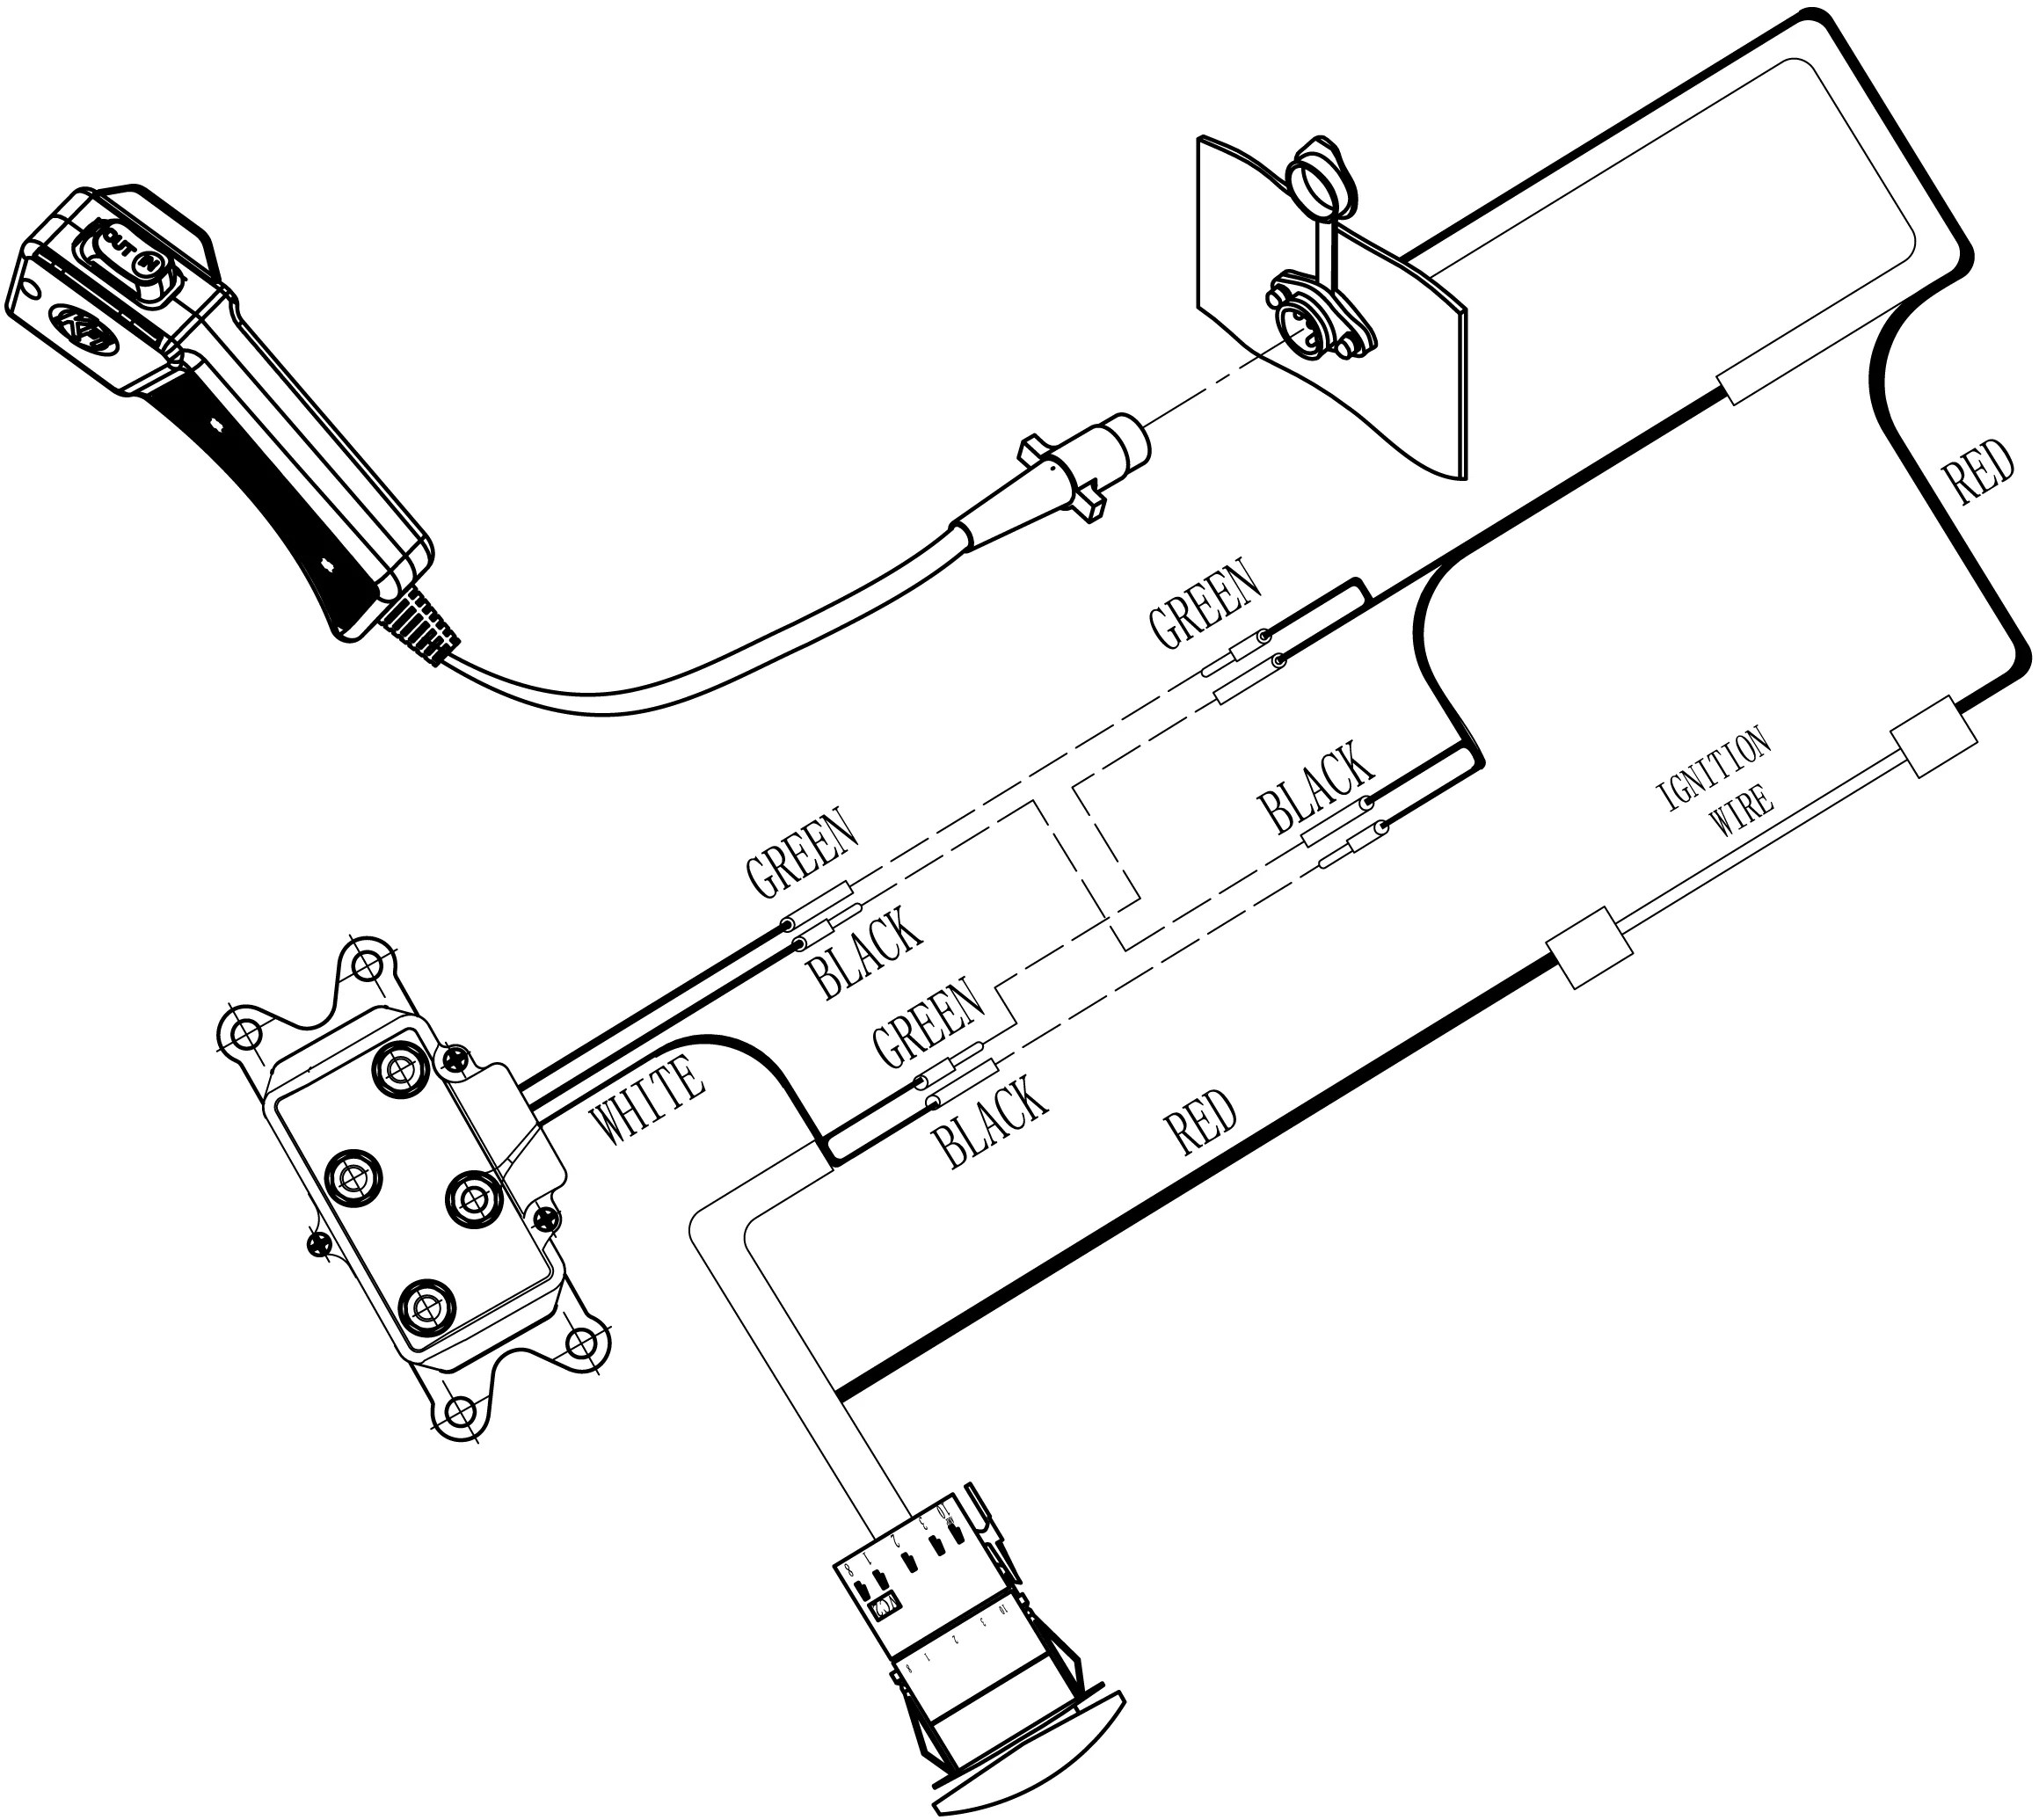 warn winch wiring diagram xd9000i fetal pig muscle labeled schematic database badland wire model 68145 repair